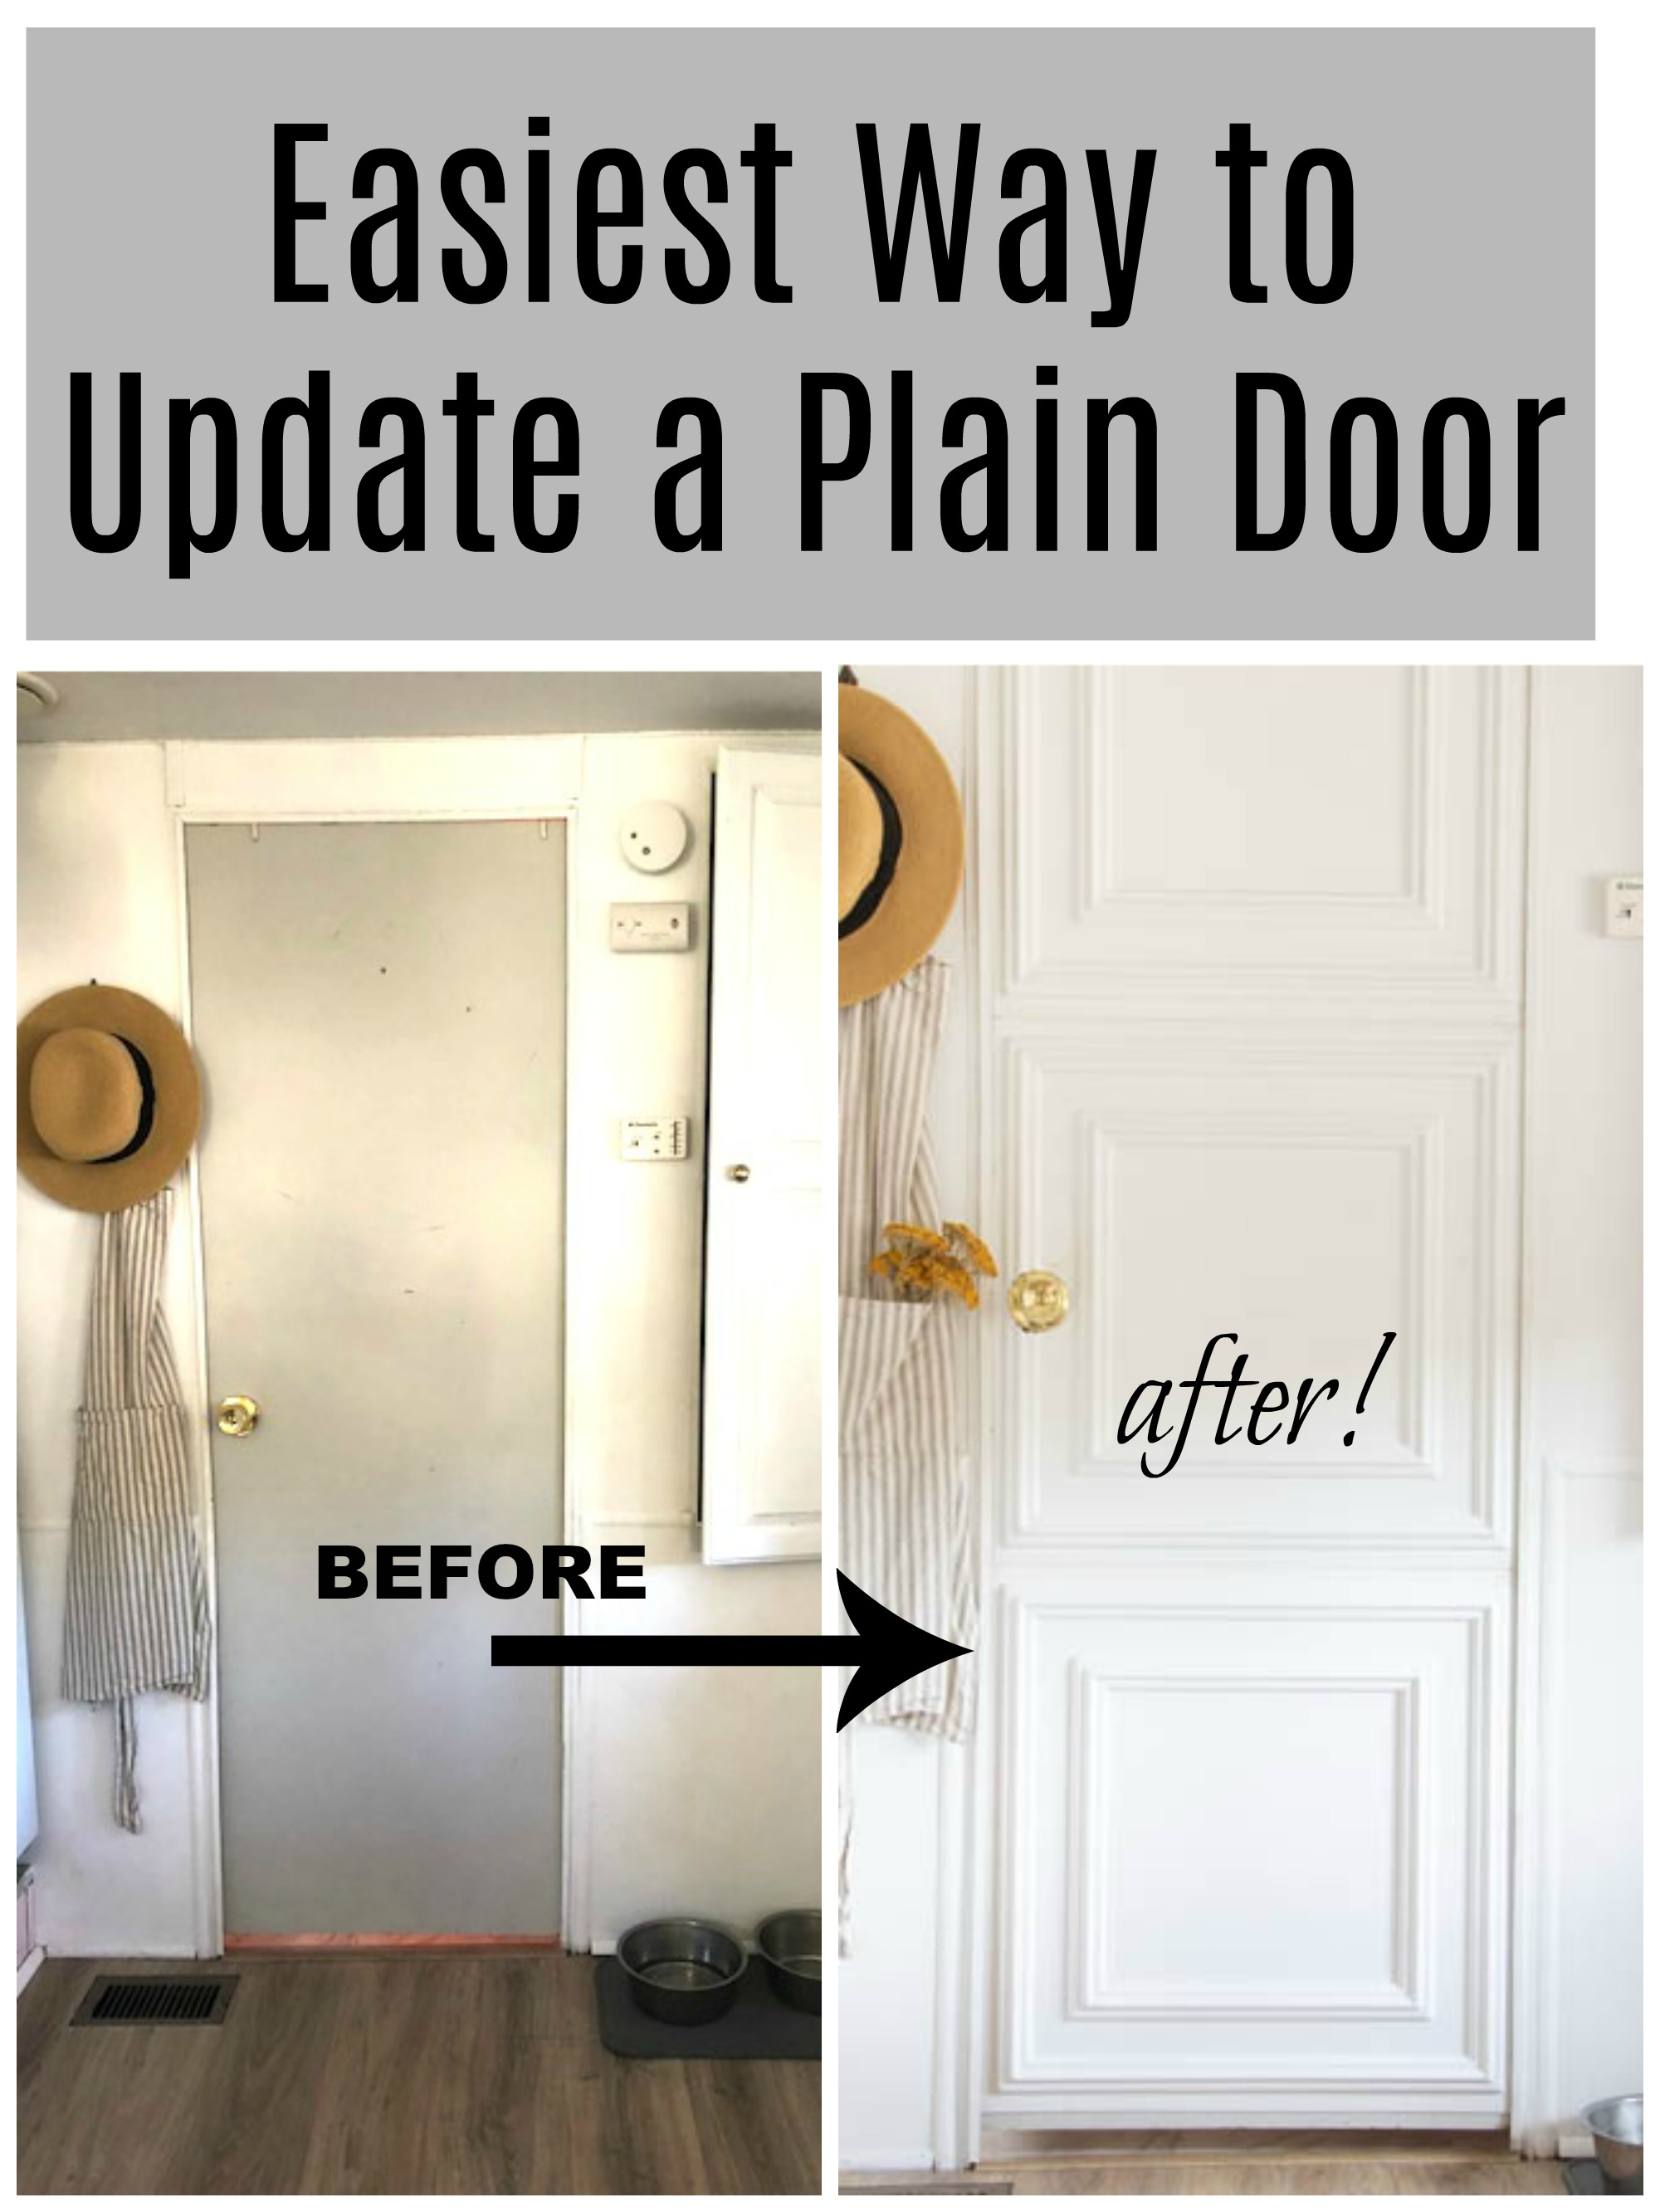 easiest way to update a plain door